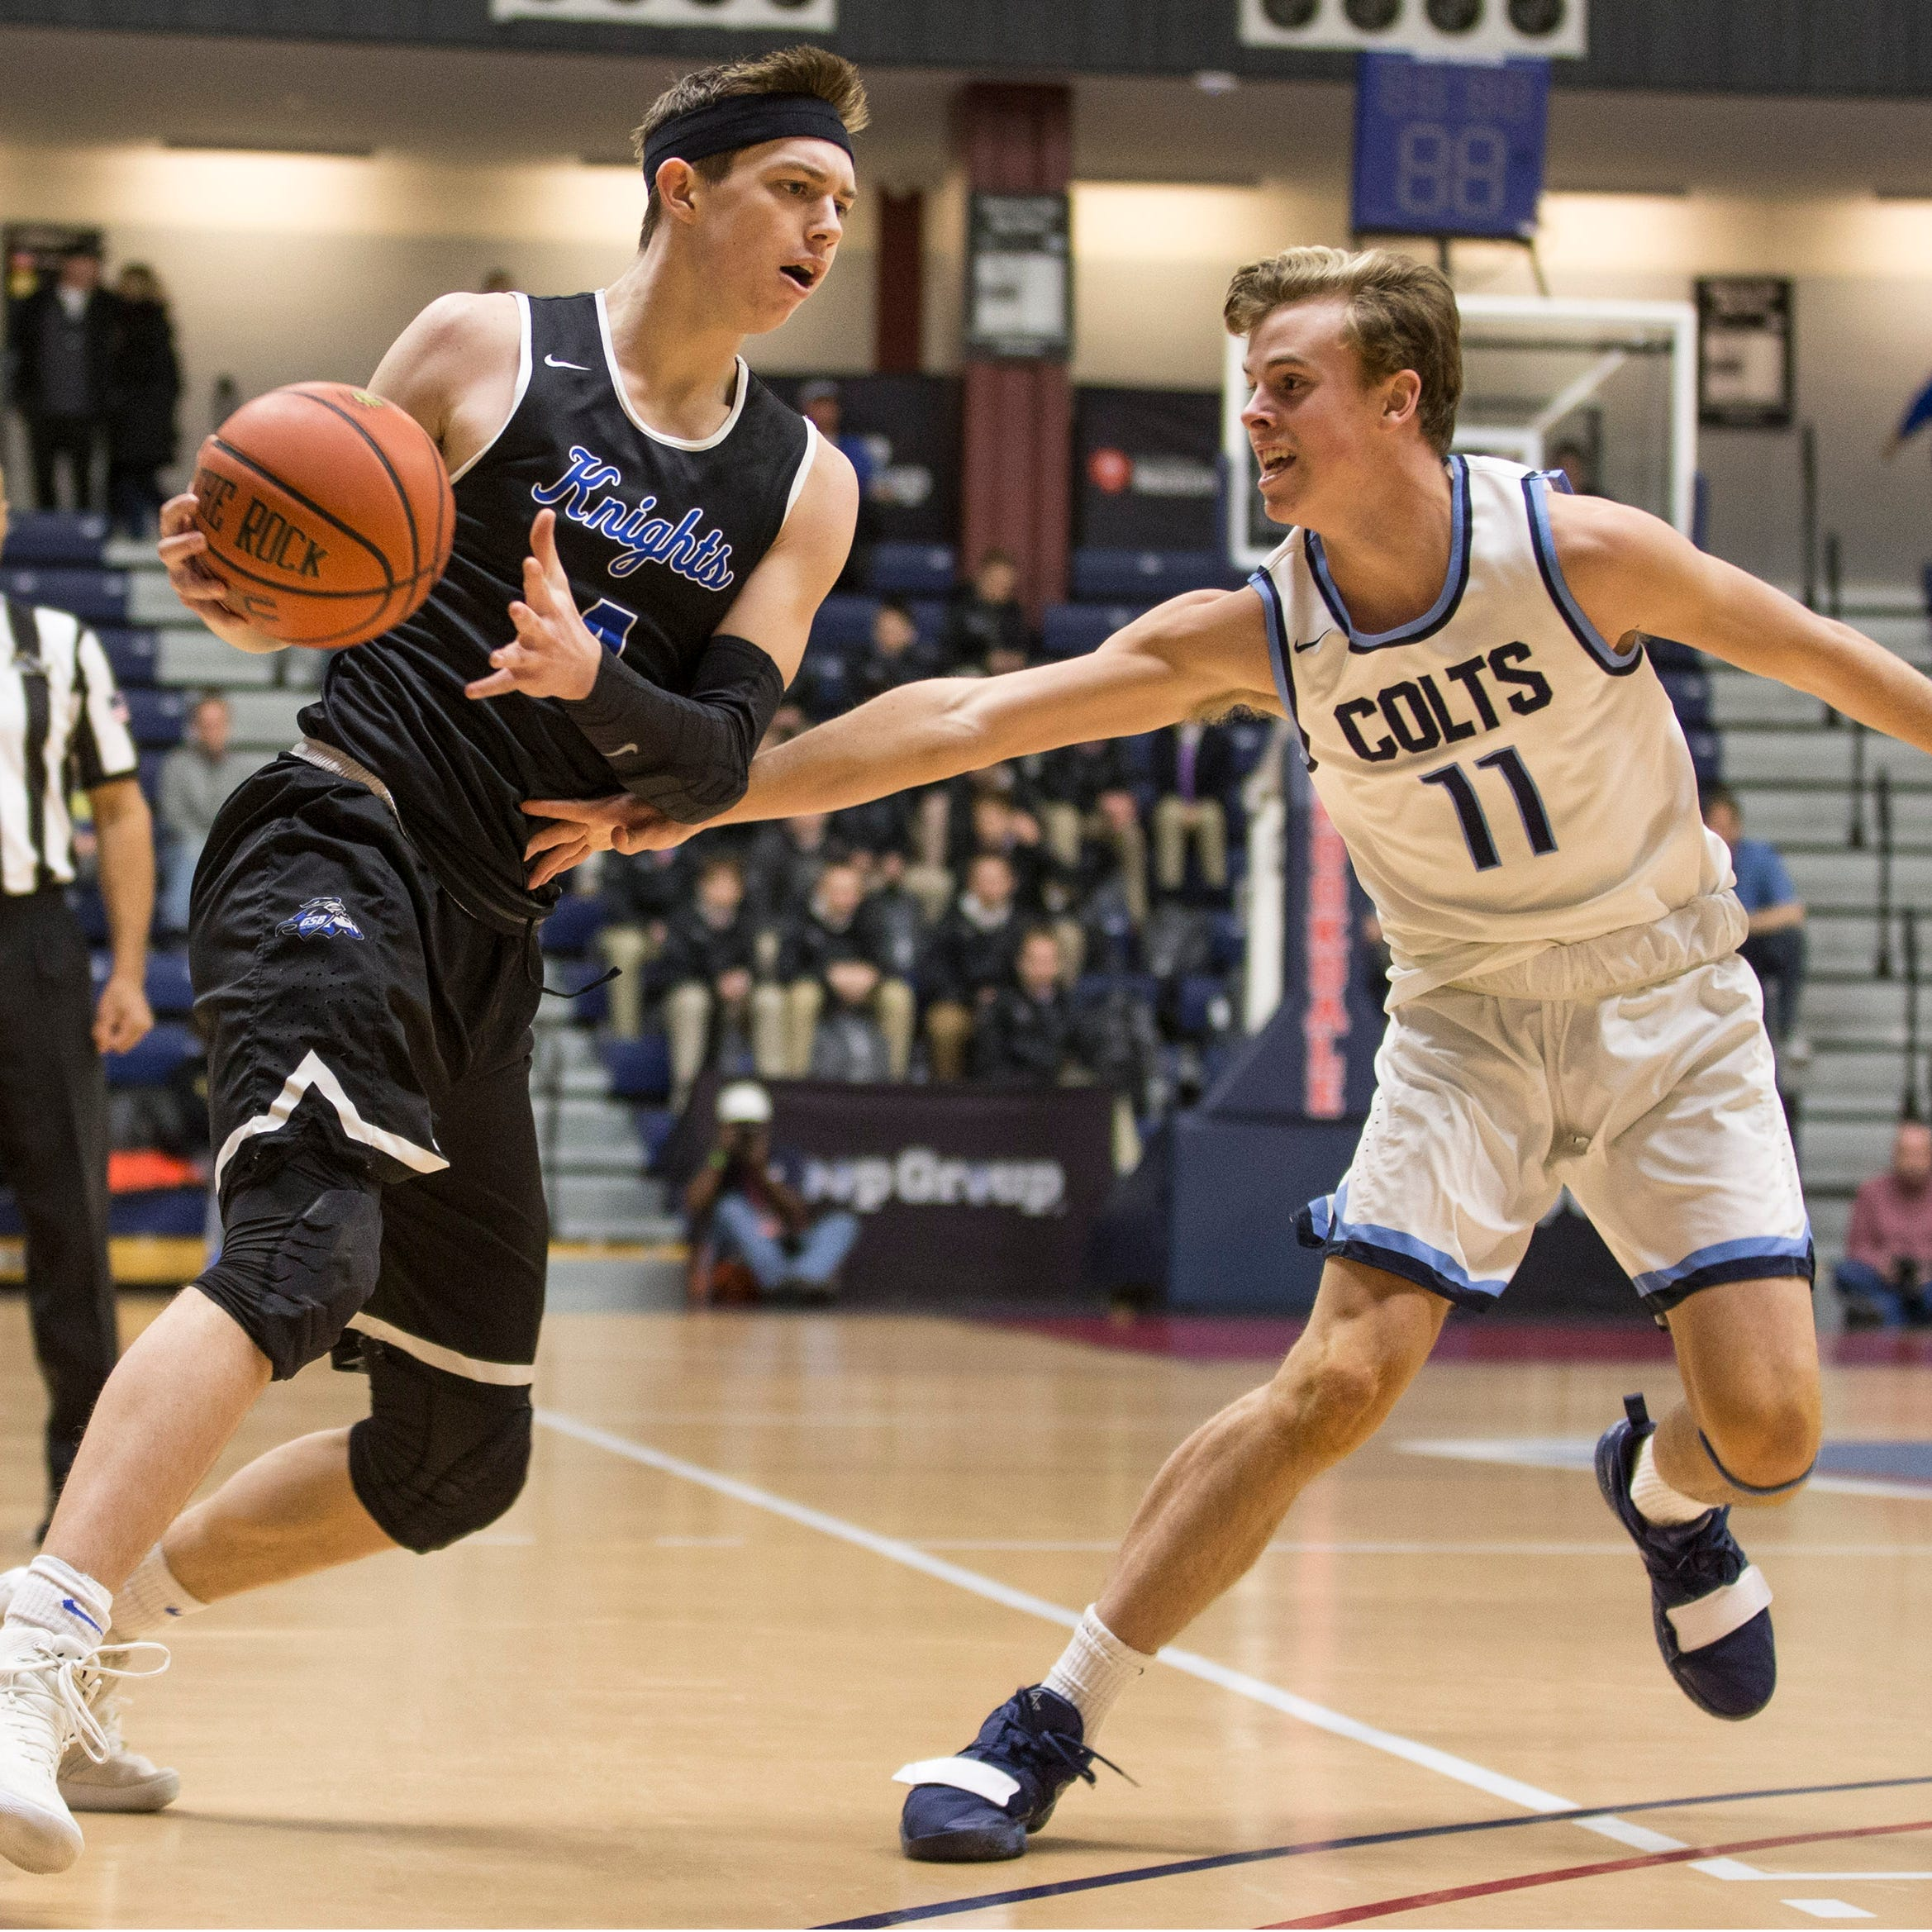 NJ Boys Basketball: Courier News All-Area Teams